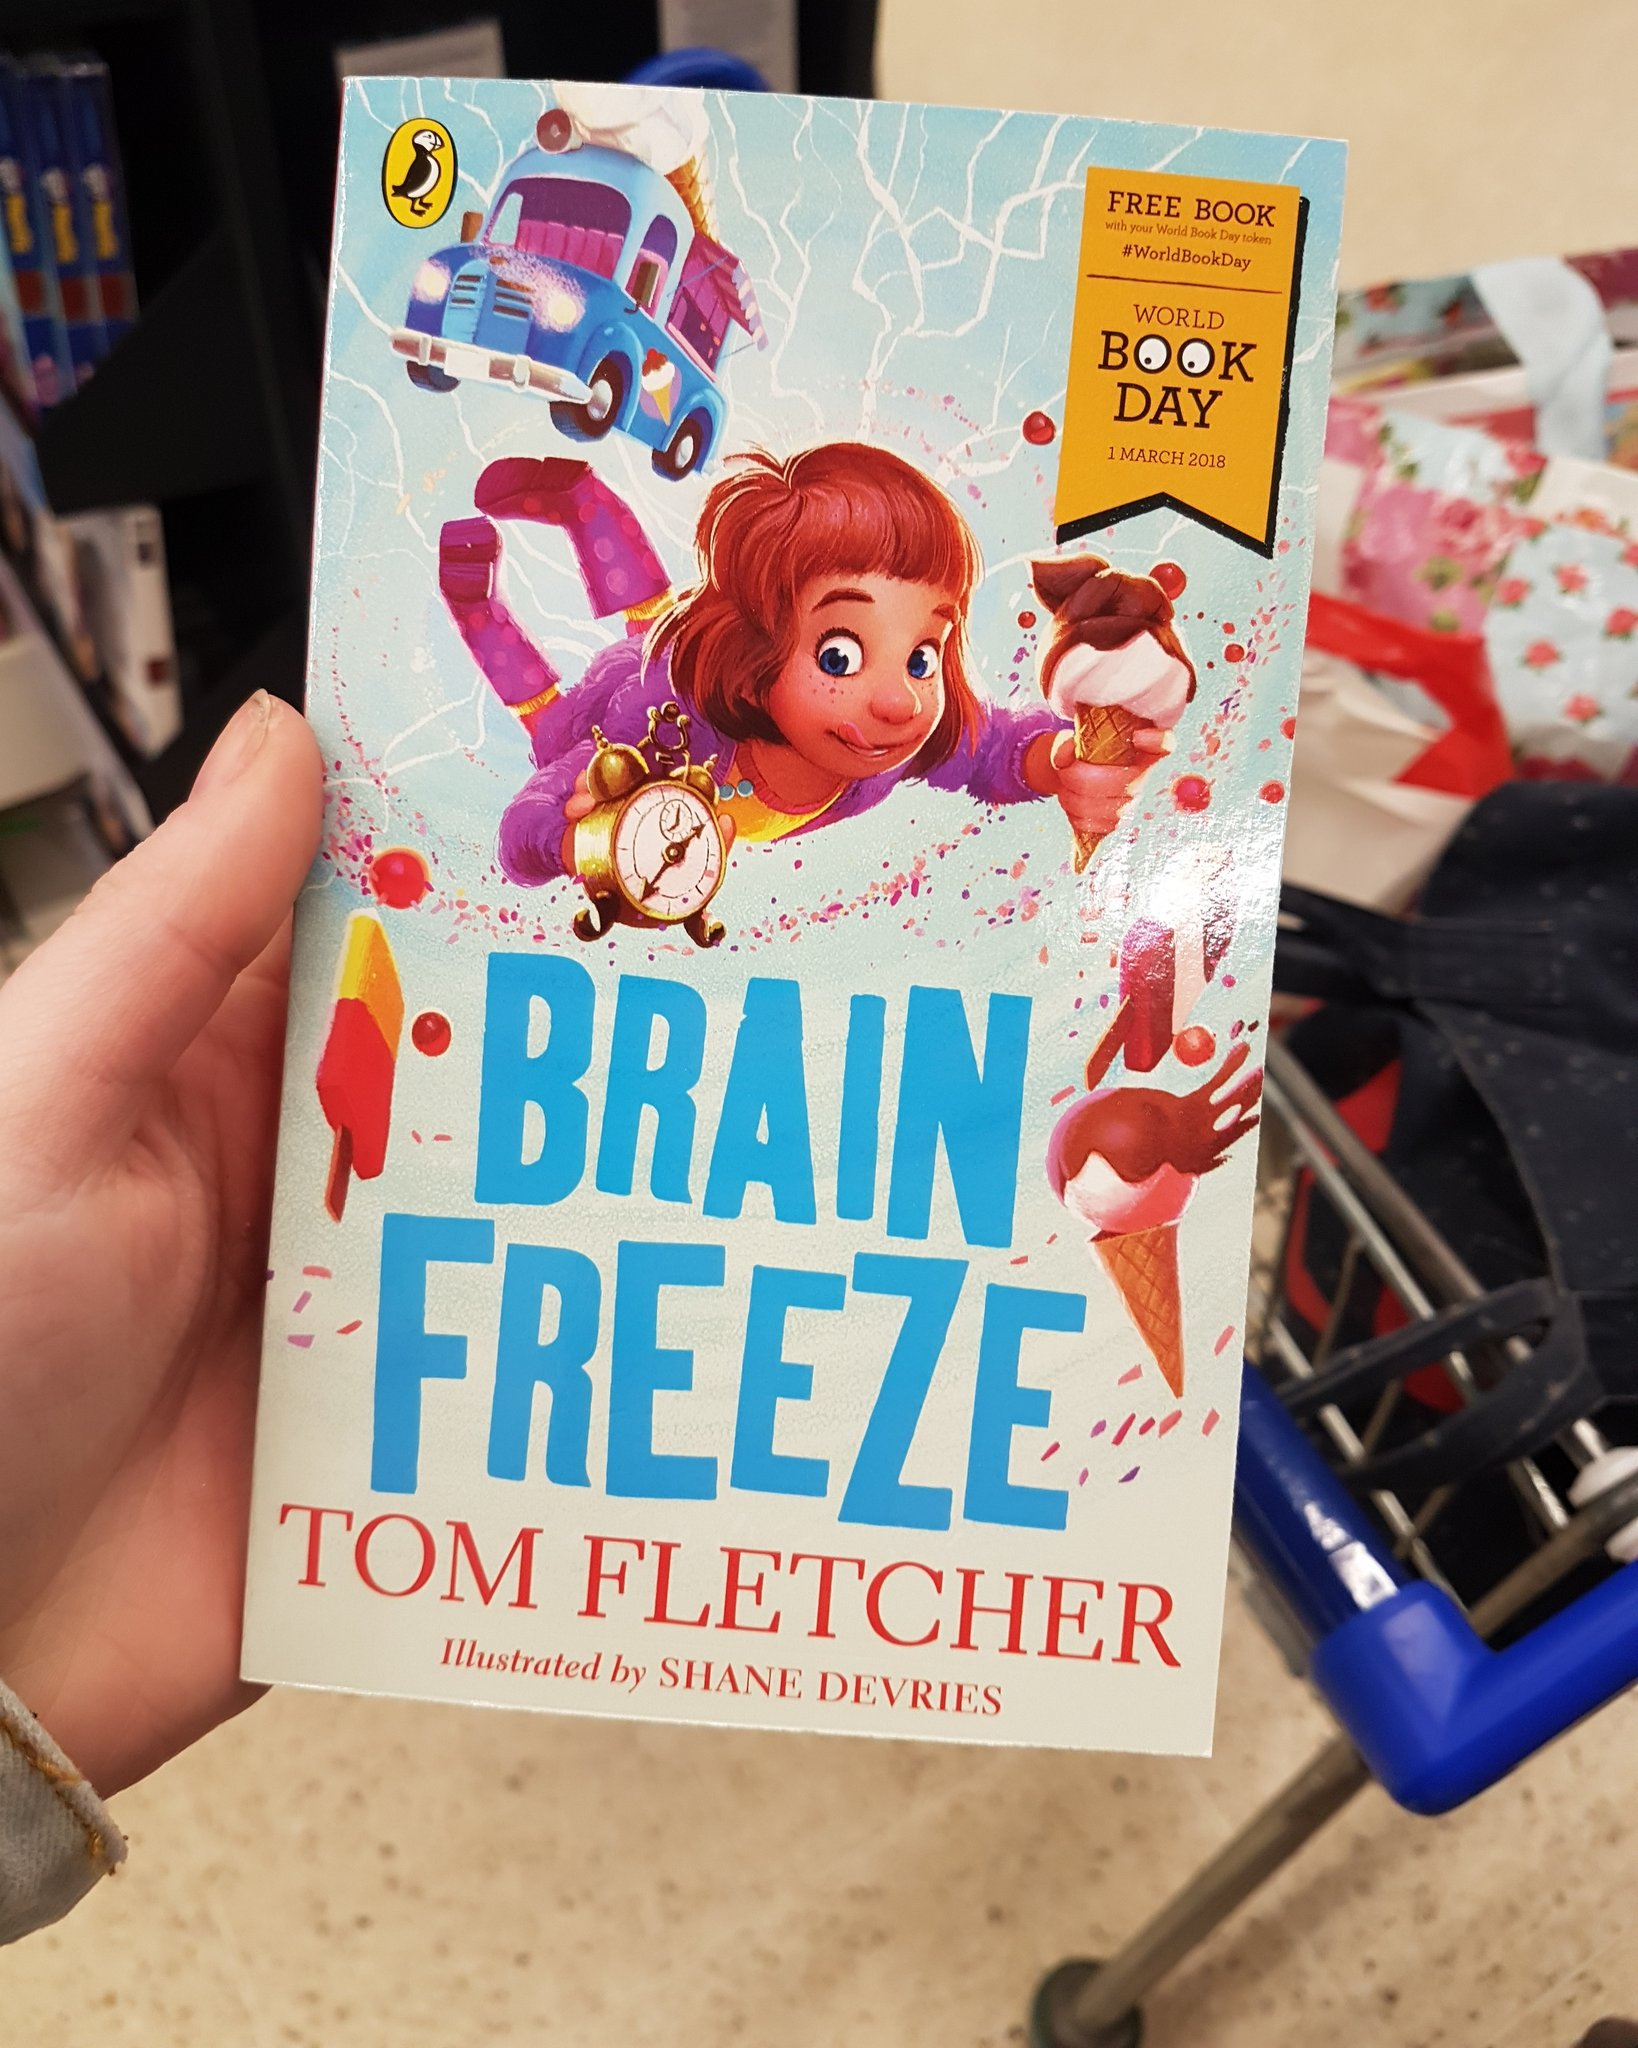 RT @jademaloneeee: I got this today @TomFletcher https://t.co/Dsed641EHm